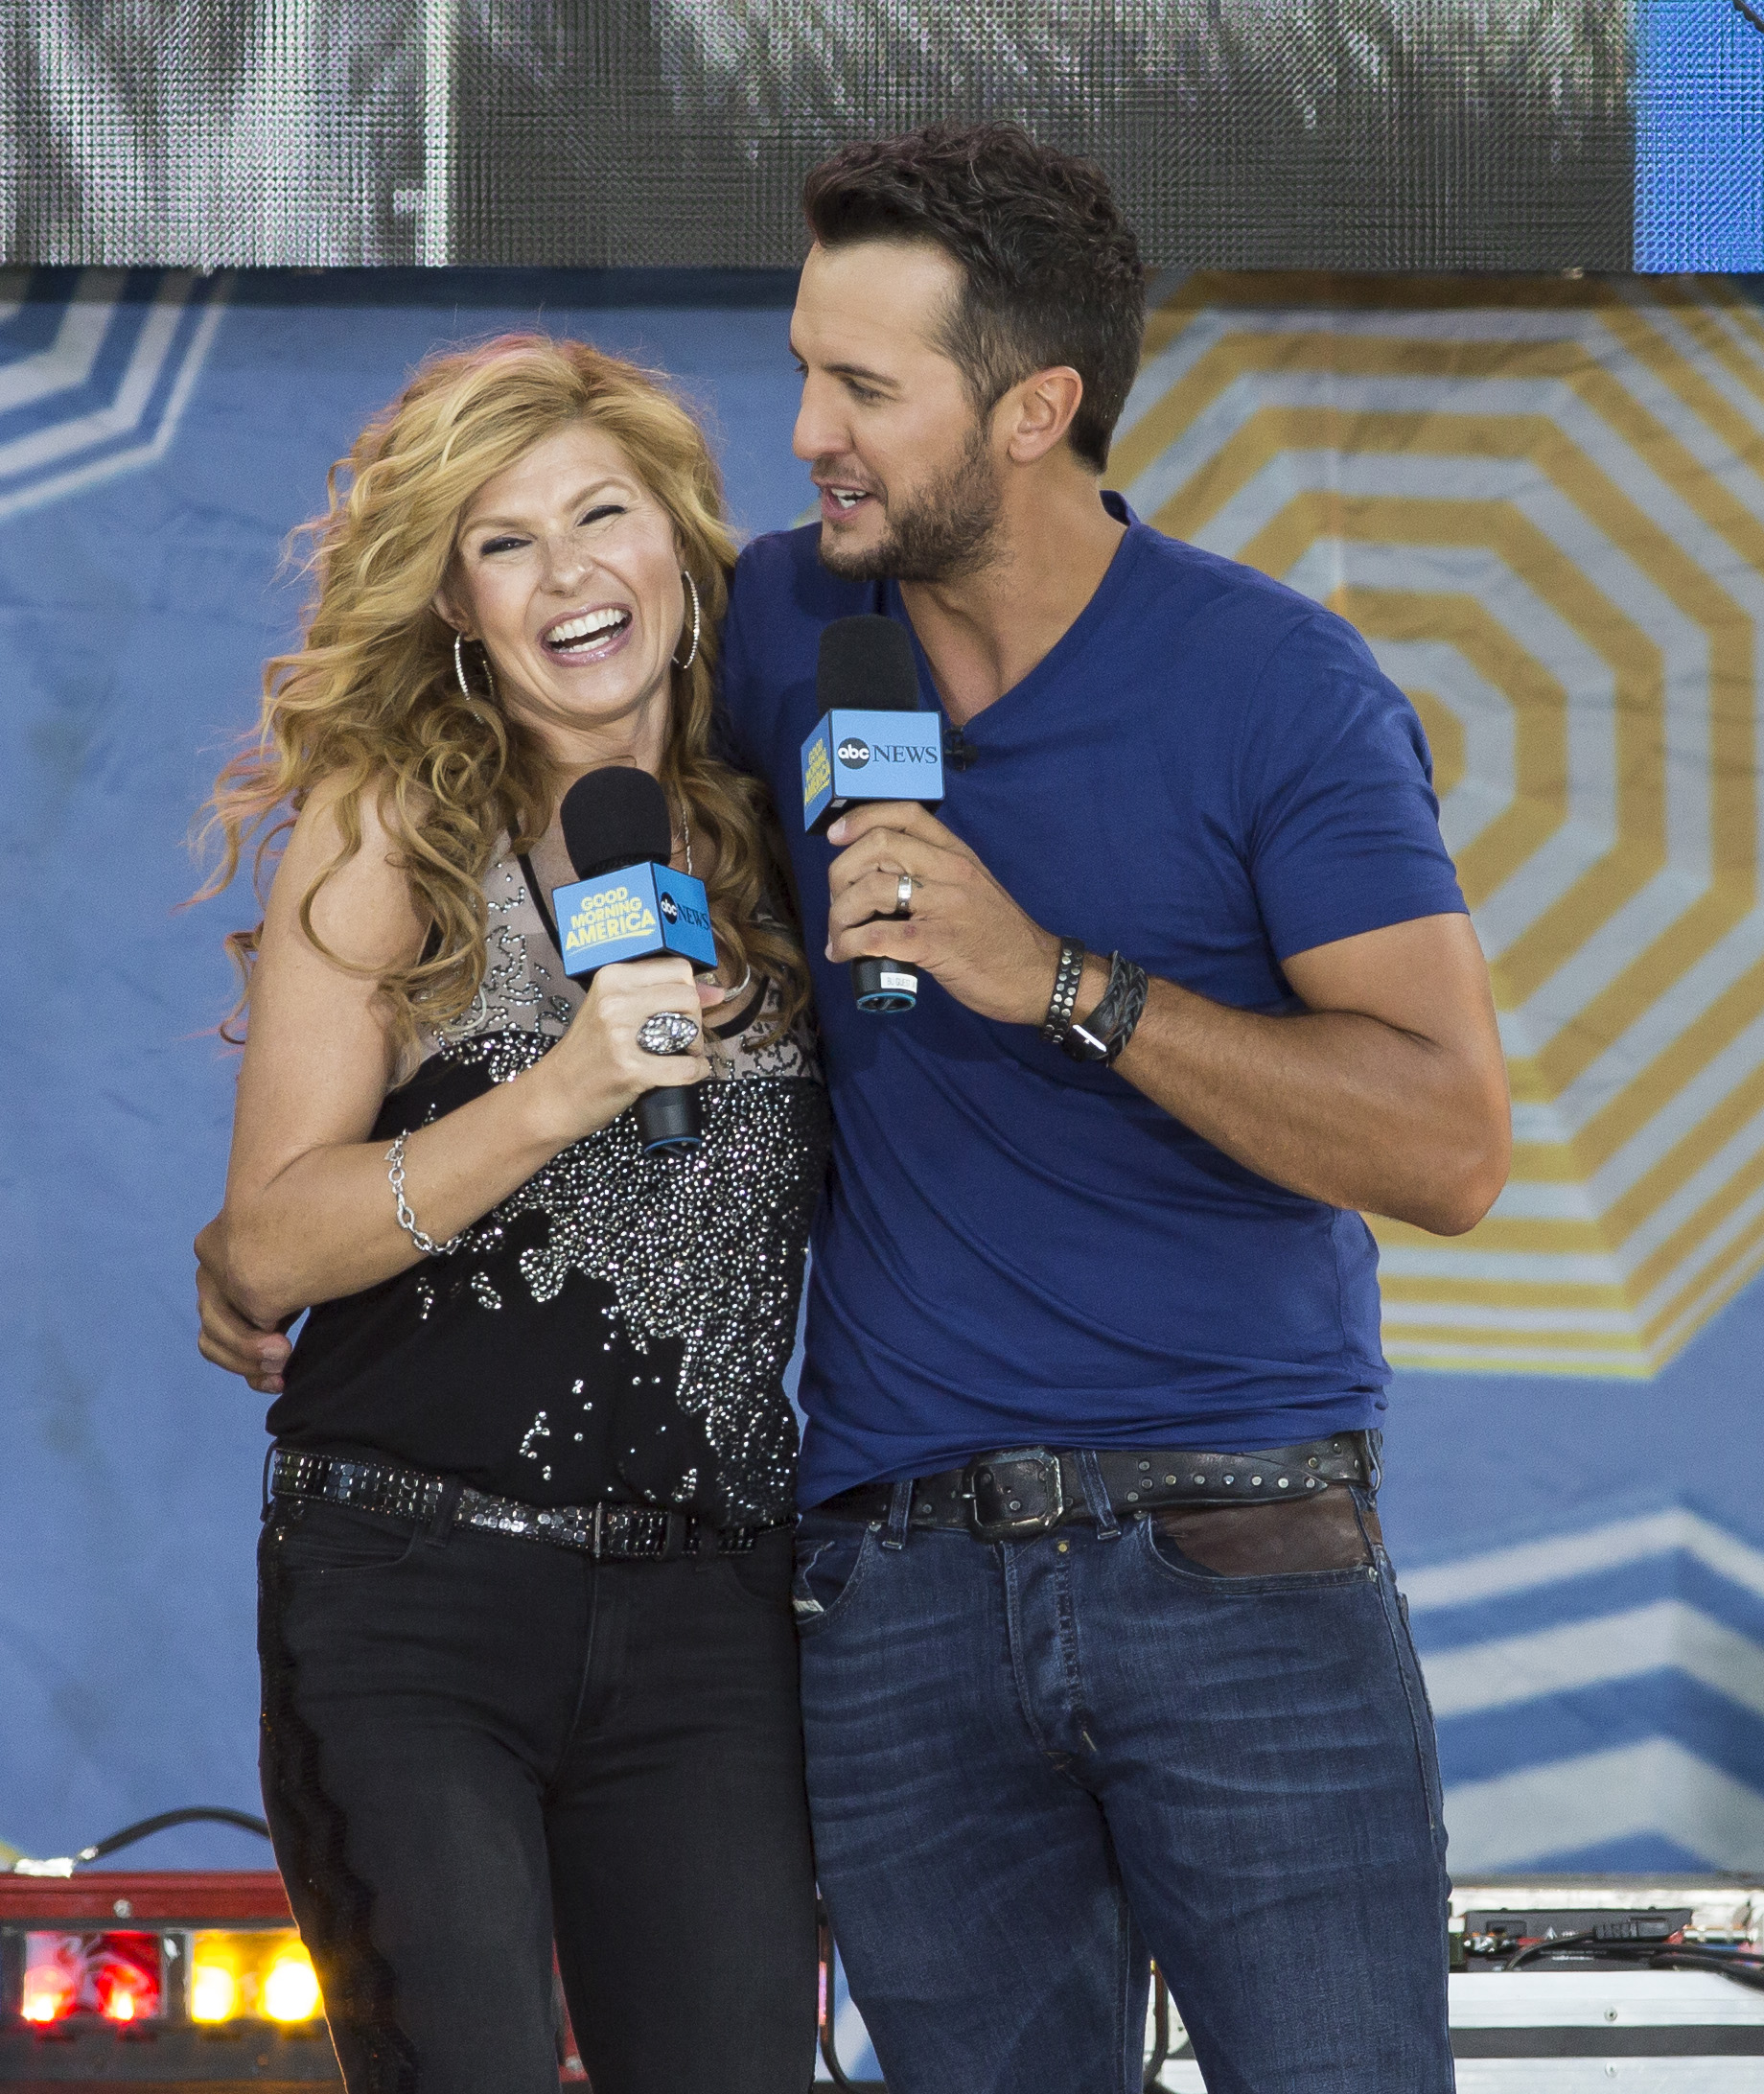 Connie Britton tapes a segment for ABC's musical television drama 'Nashville' on 'Good Morning America'                                    Featuring: Connie Britton, Luke Bryan                  Where: New York, New York, United States                  When: 08 Aug 2014                  Credit: WENN.com